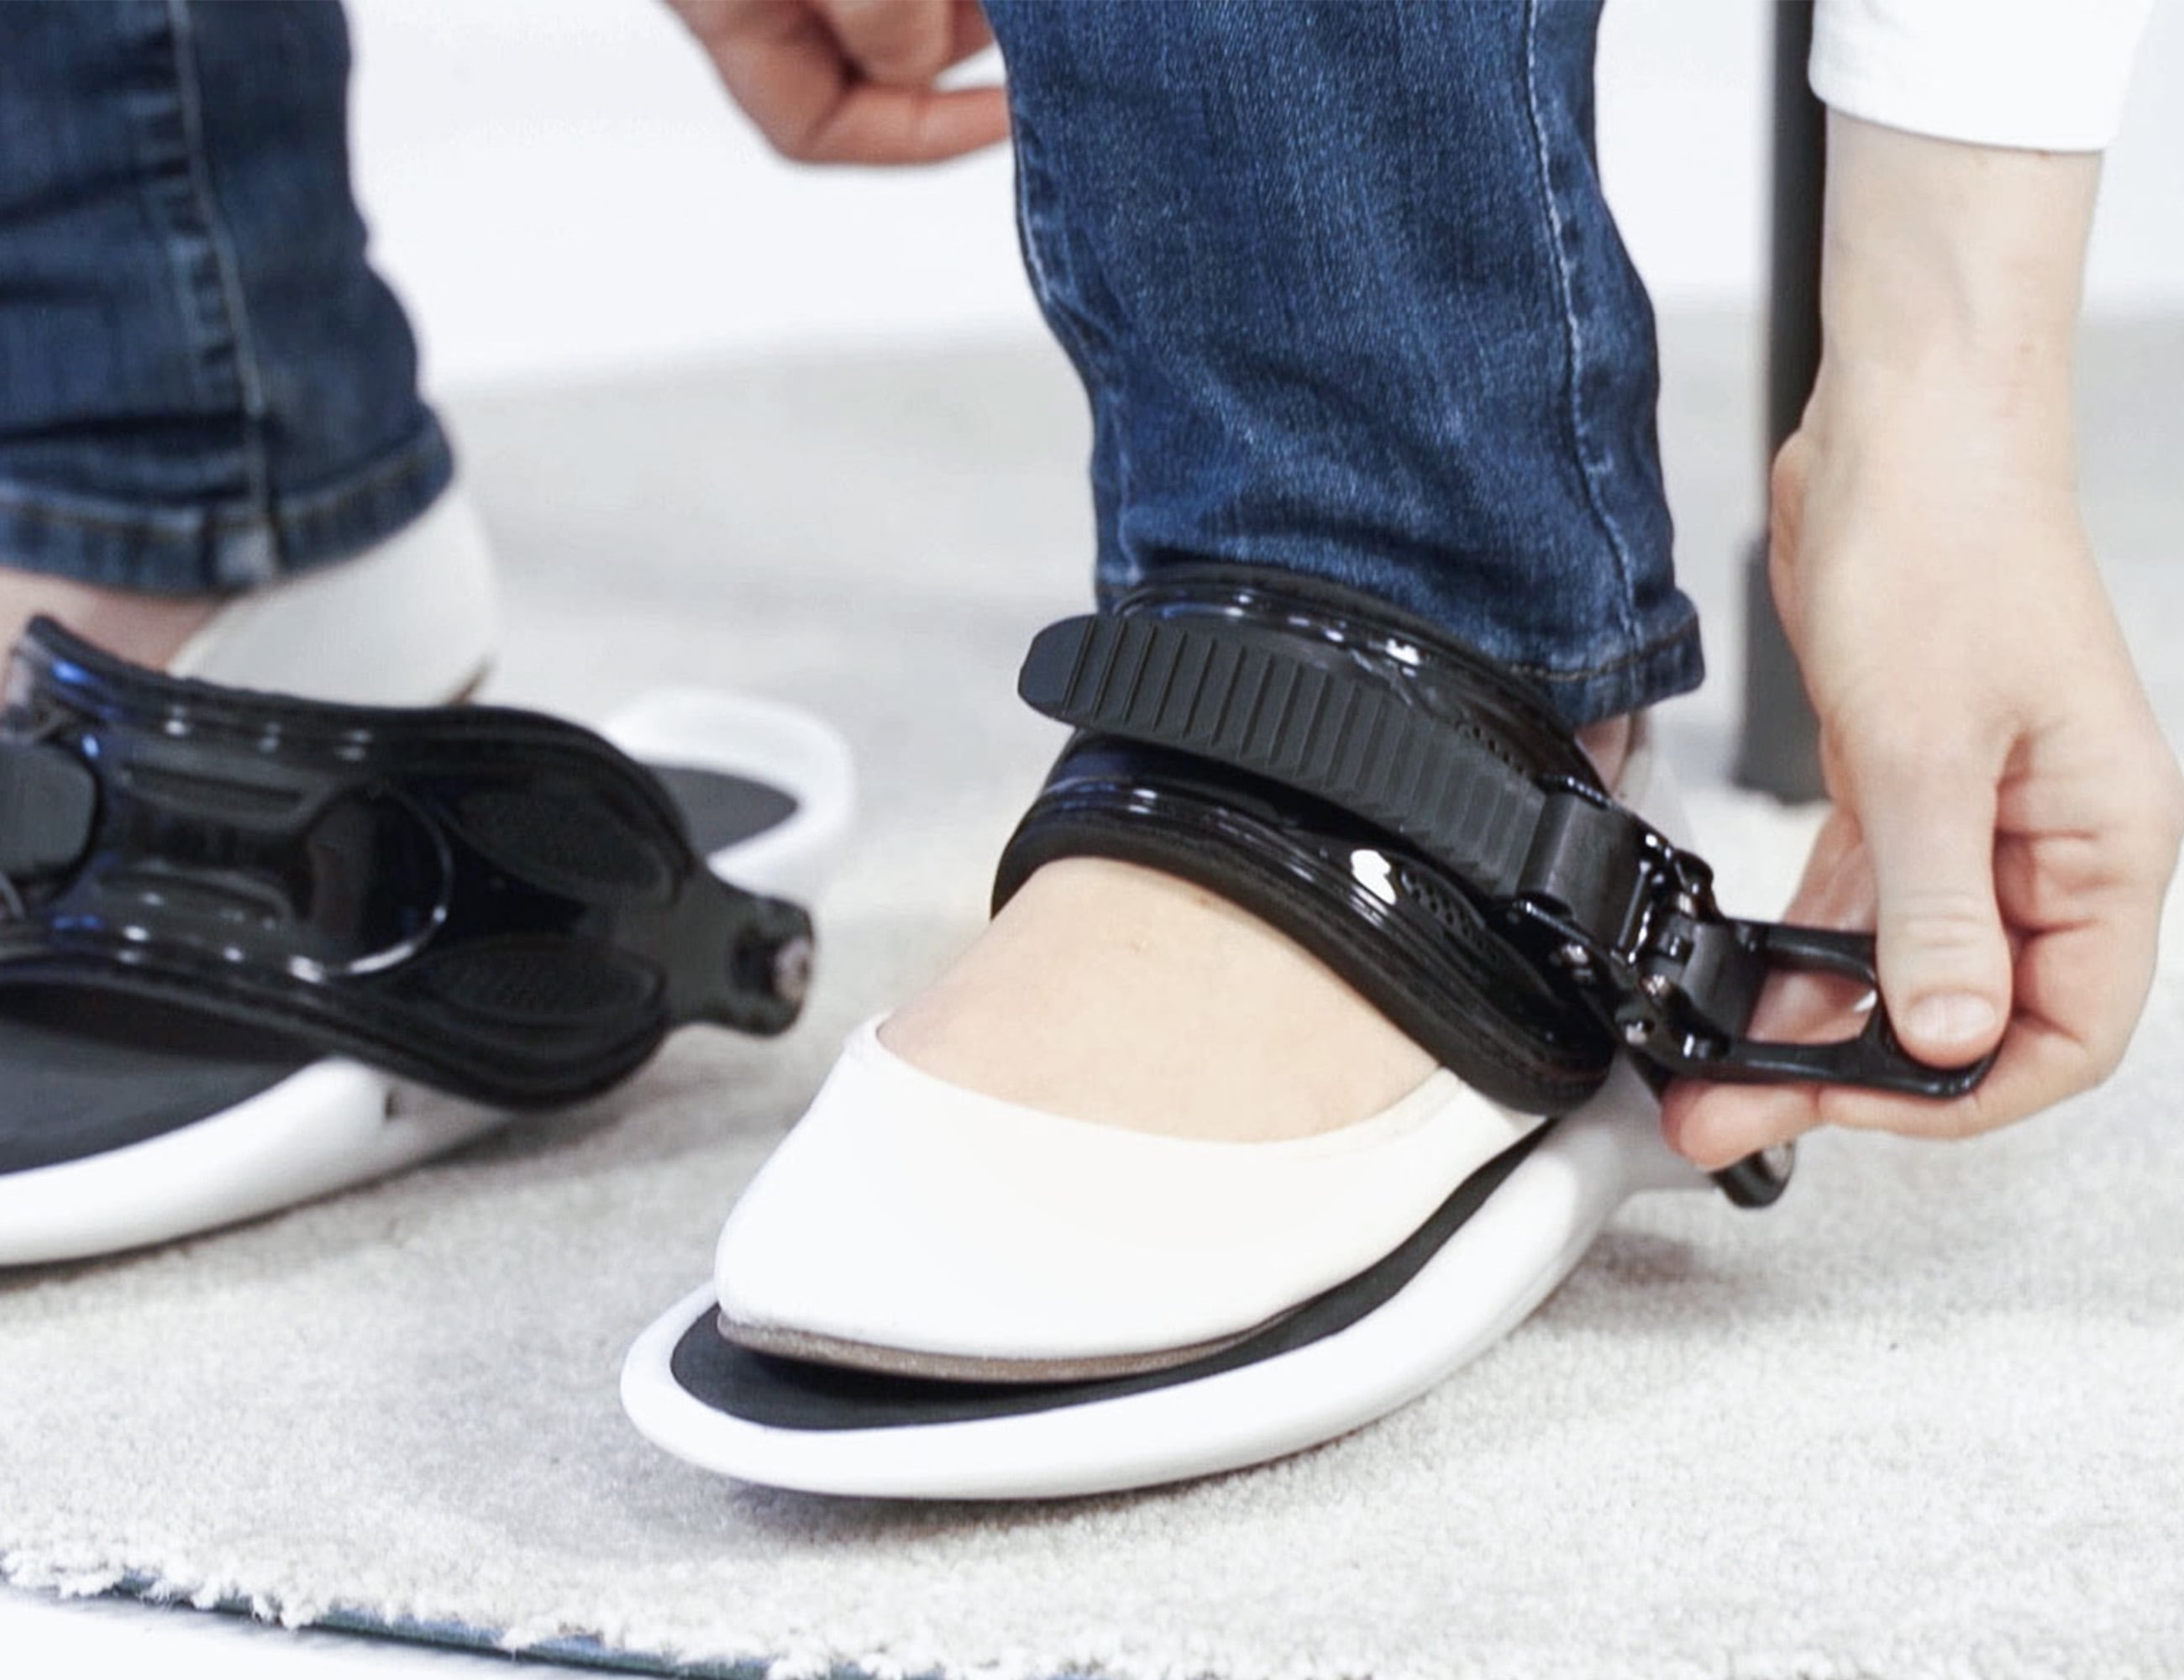 Cybershoes Virtual Reality Gaming Shoes